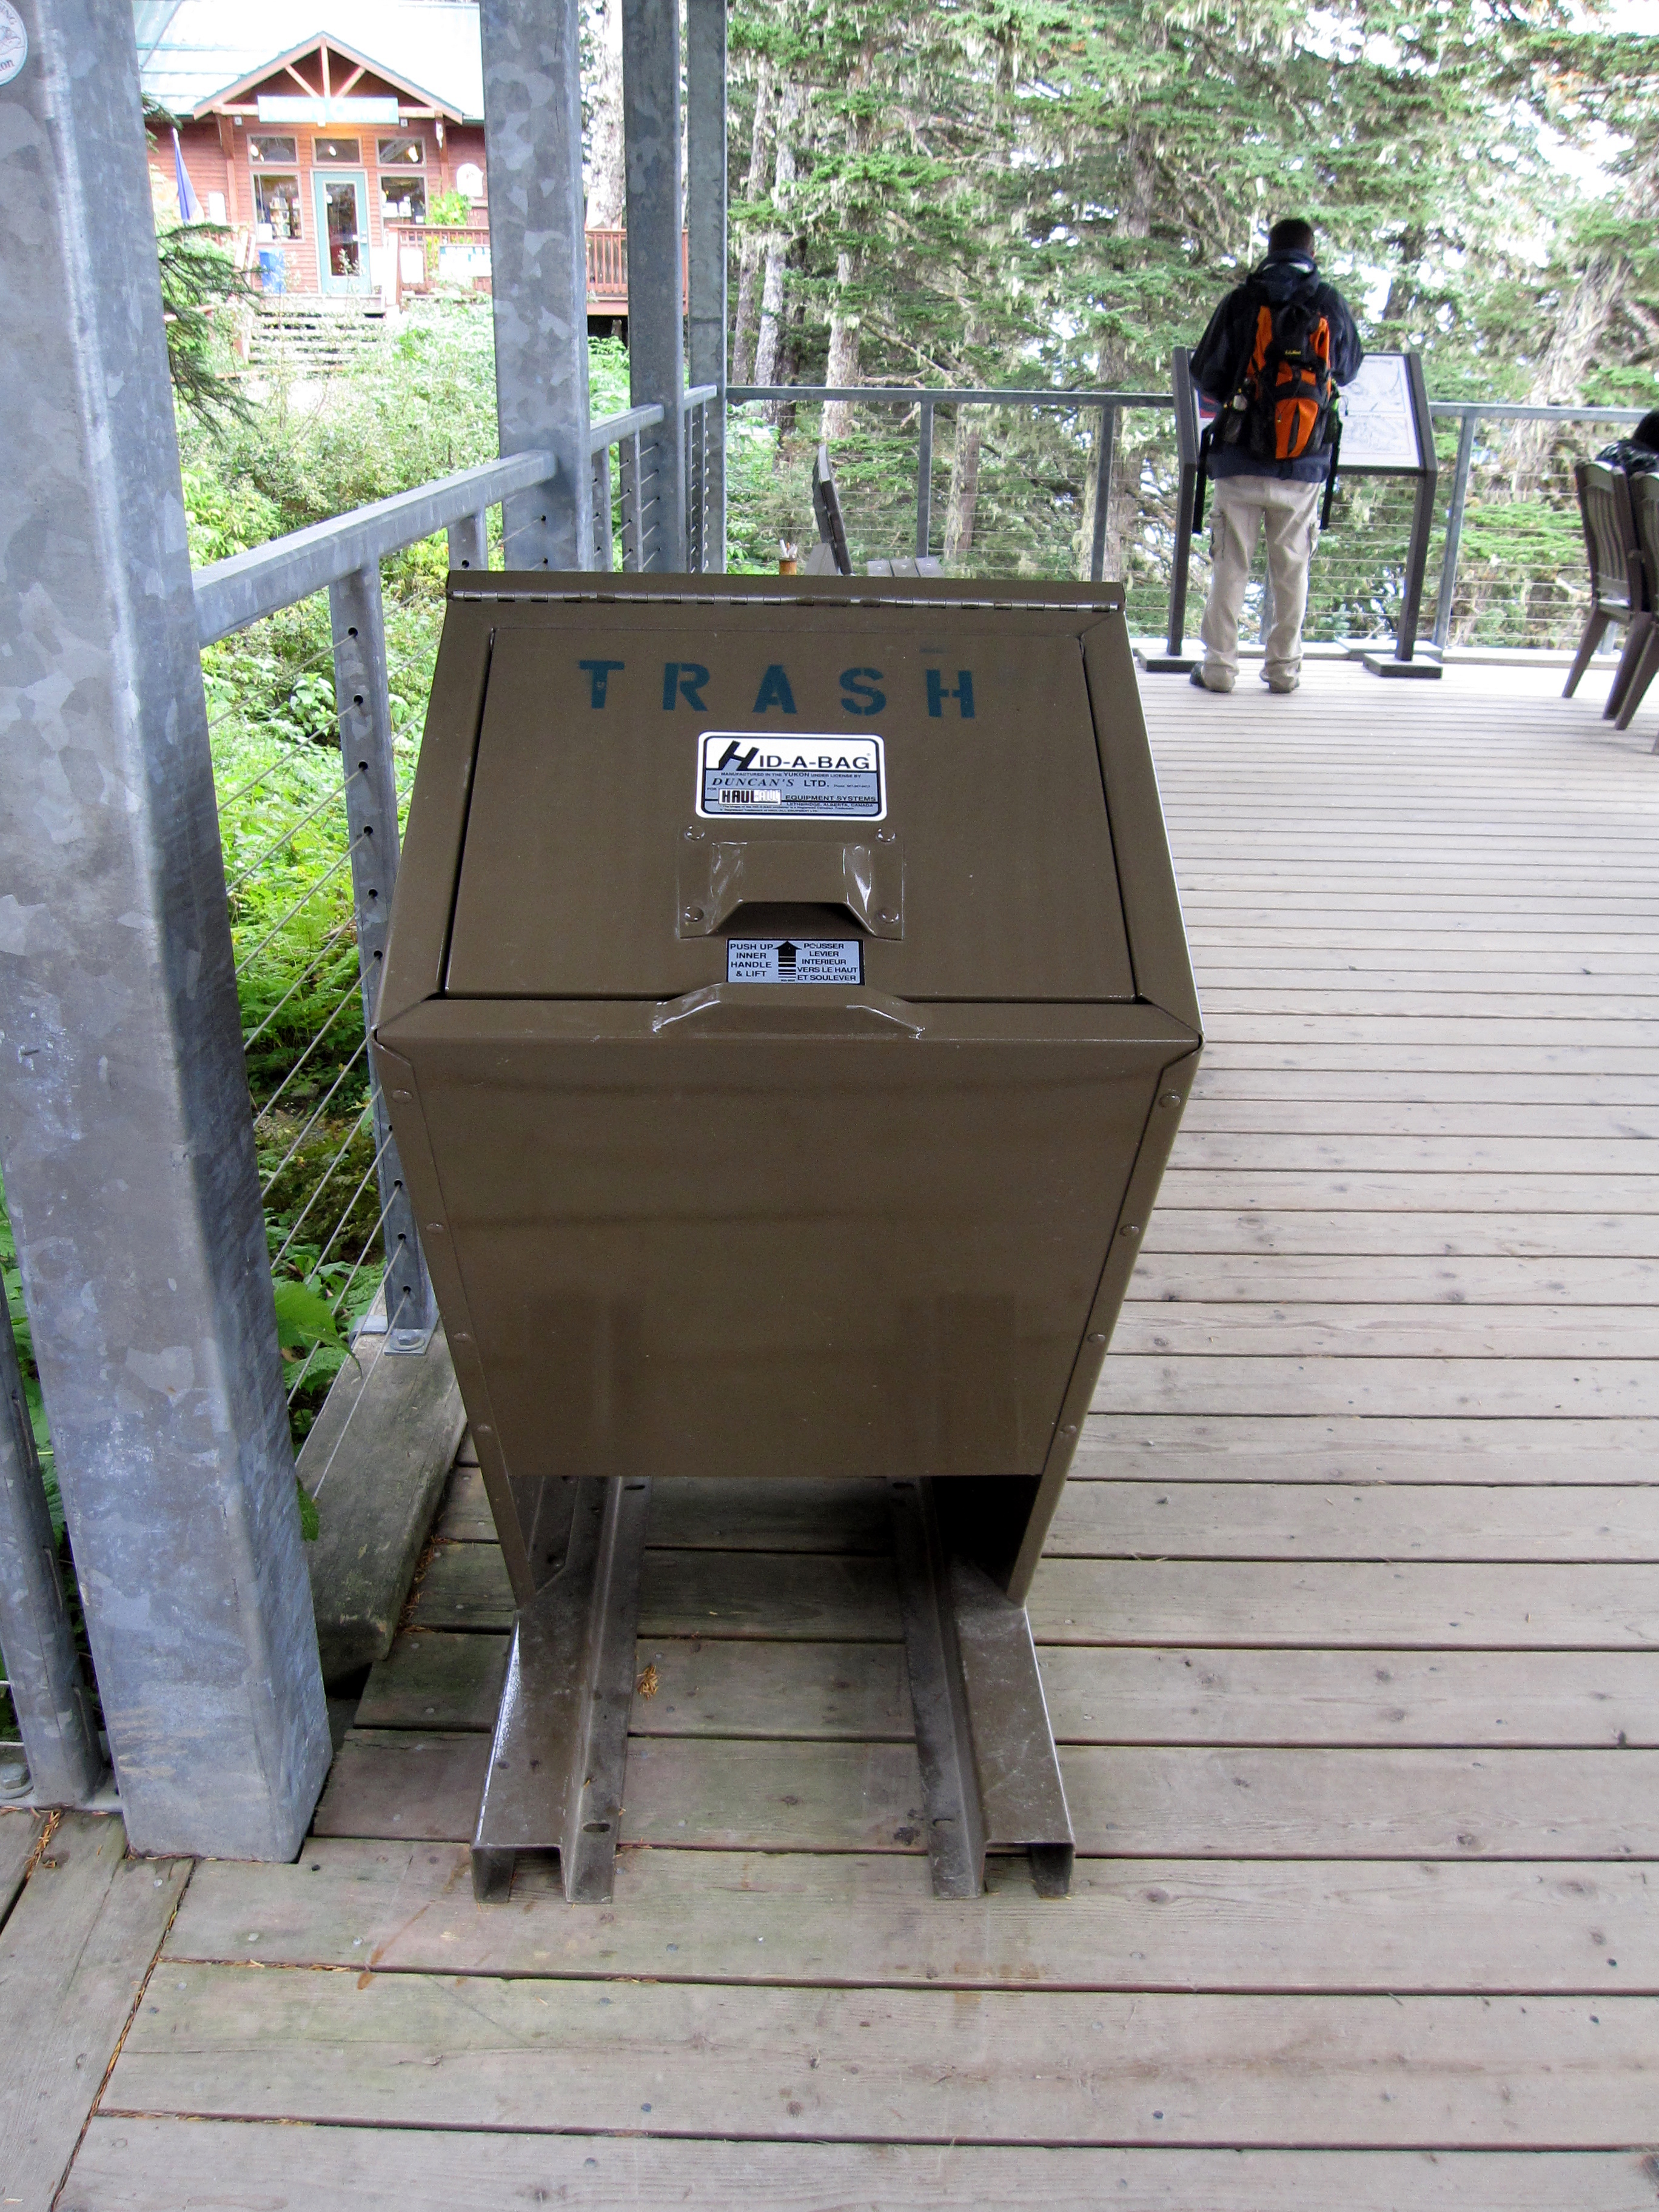 Bearicuda Stealth Bearproof Garbage Can Is Tested And Roved To Keep Bears Out Of Your